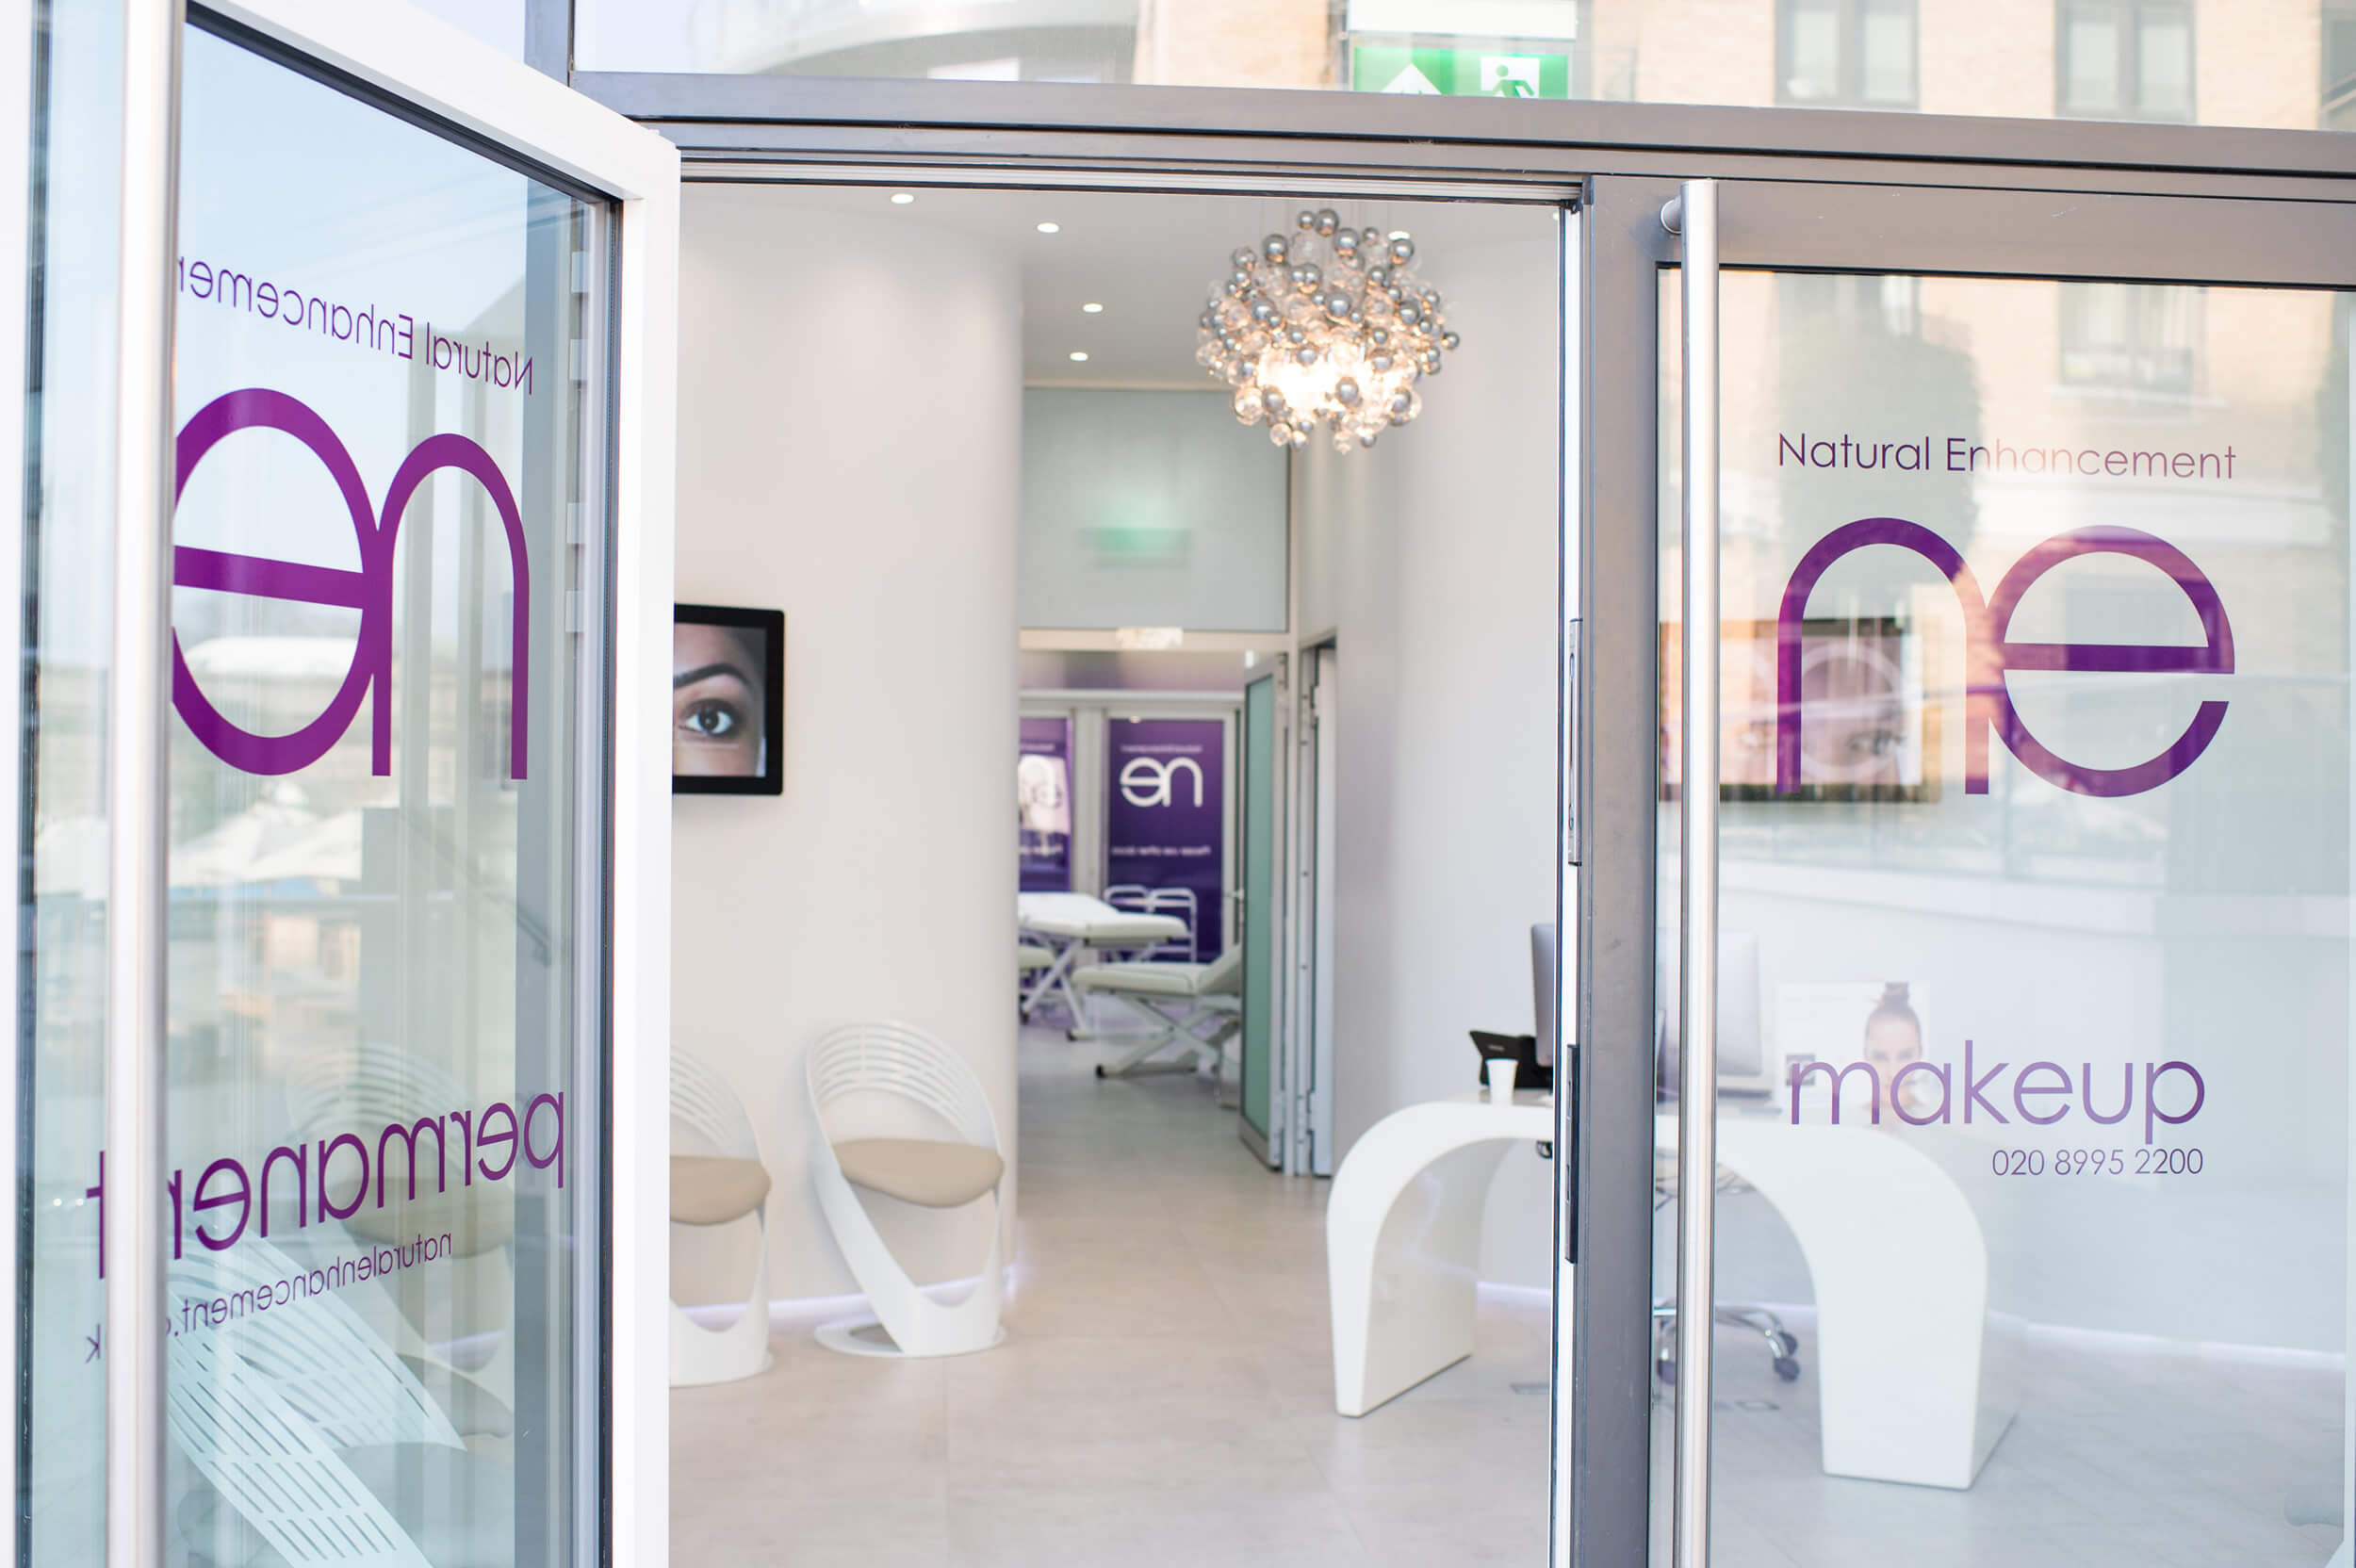 Four of the best Eyebrow Clinics in the UK